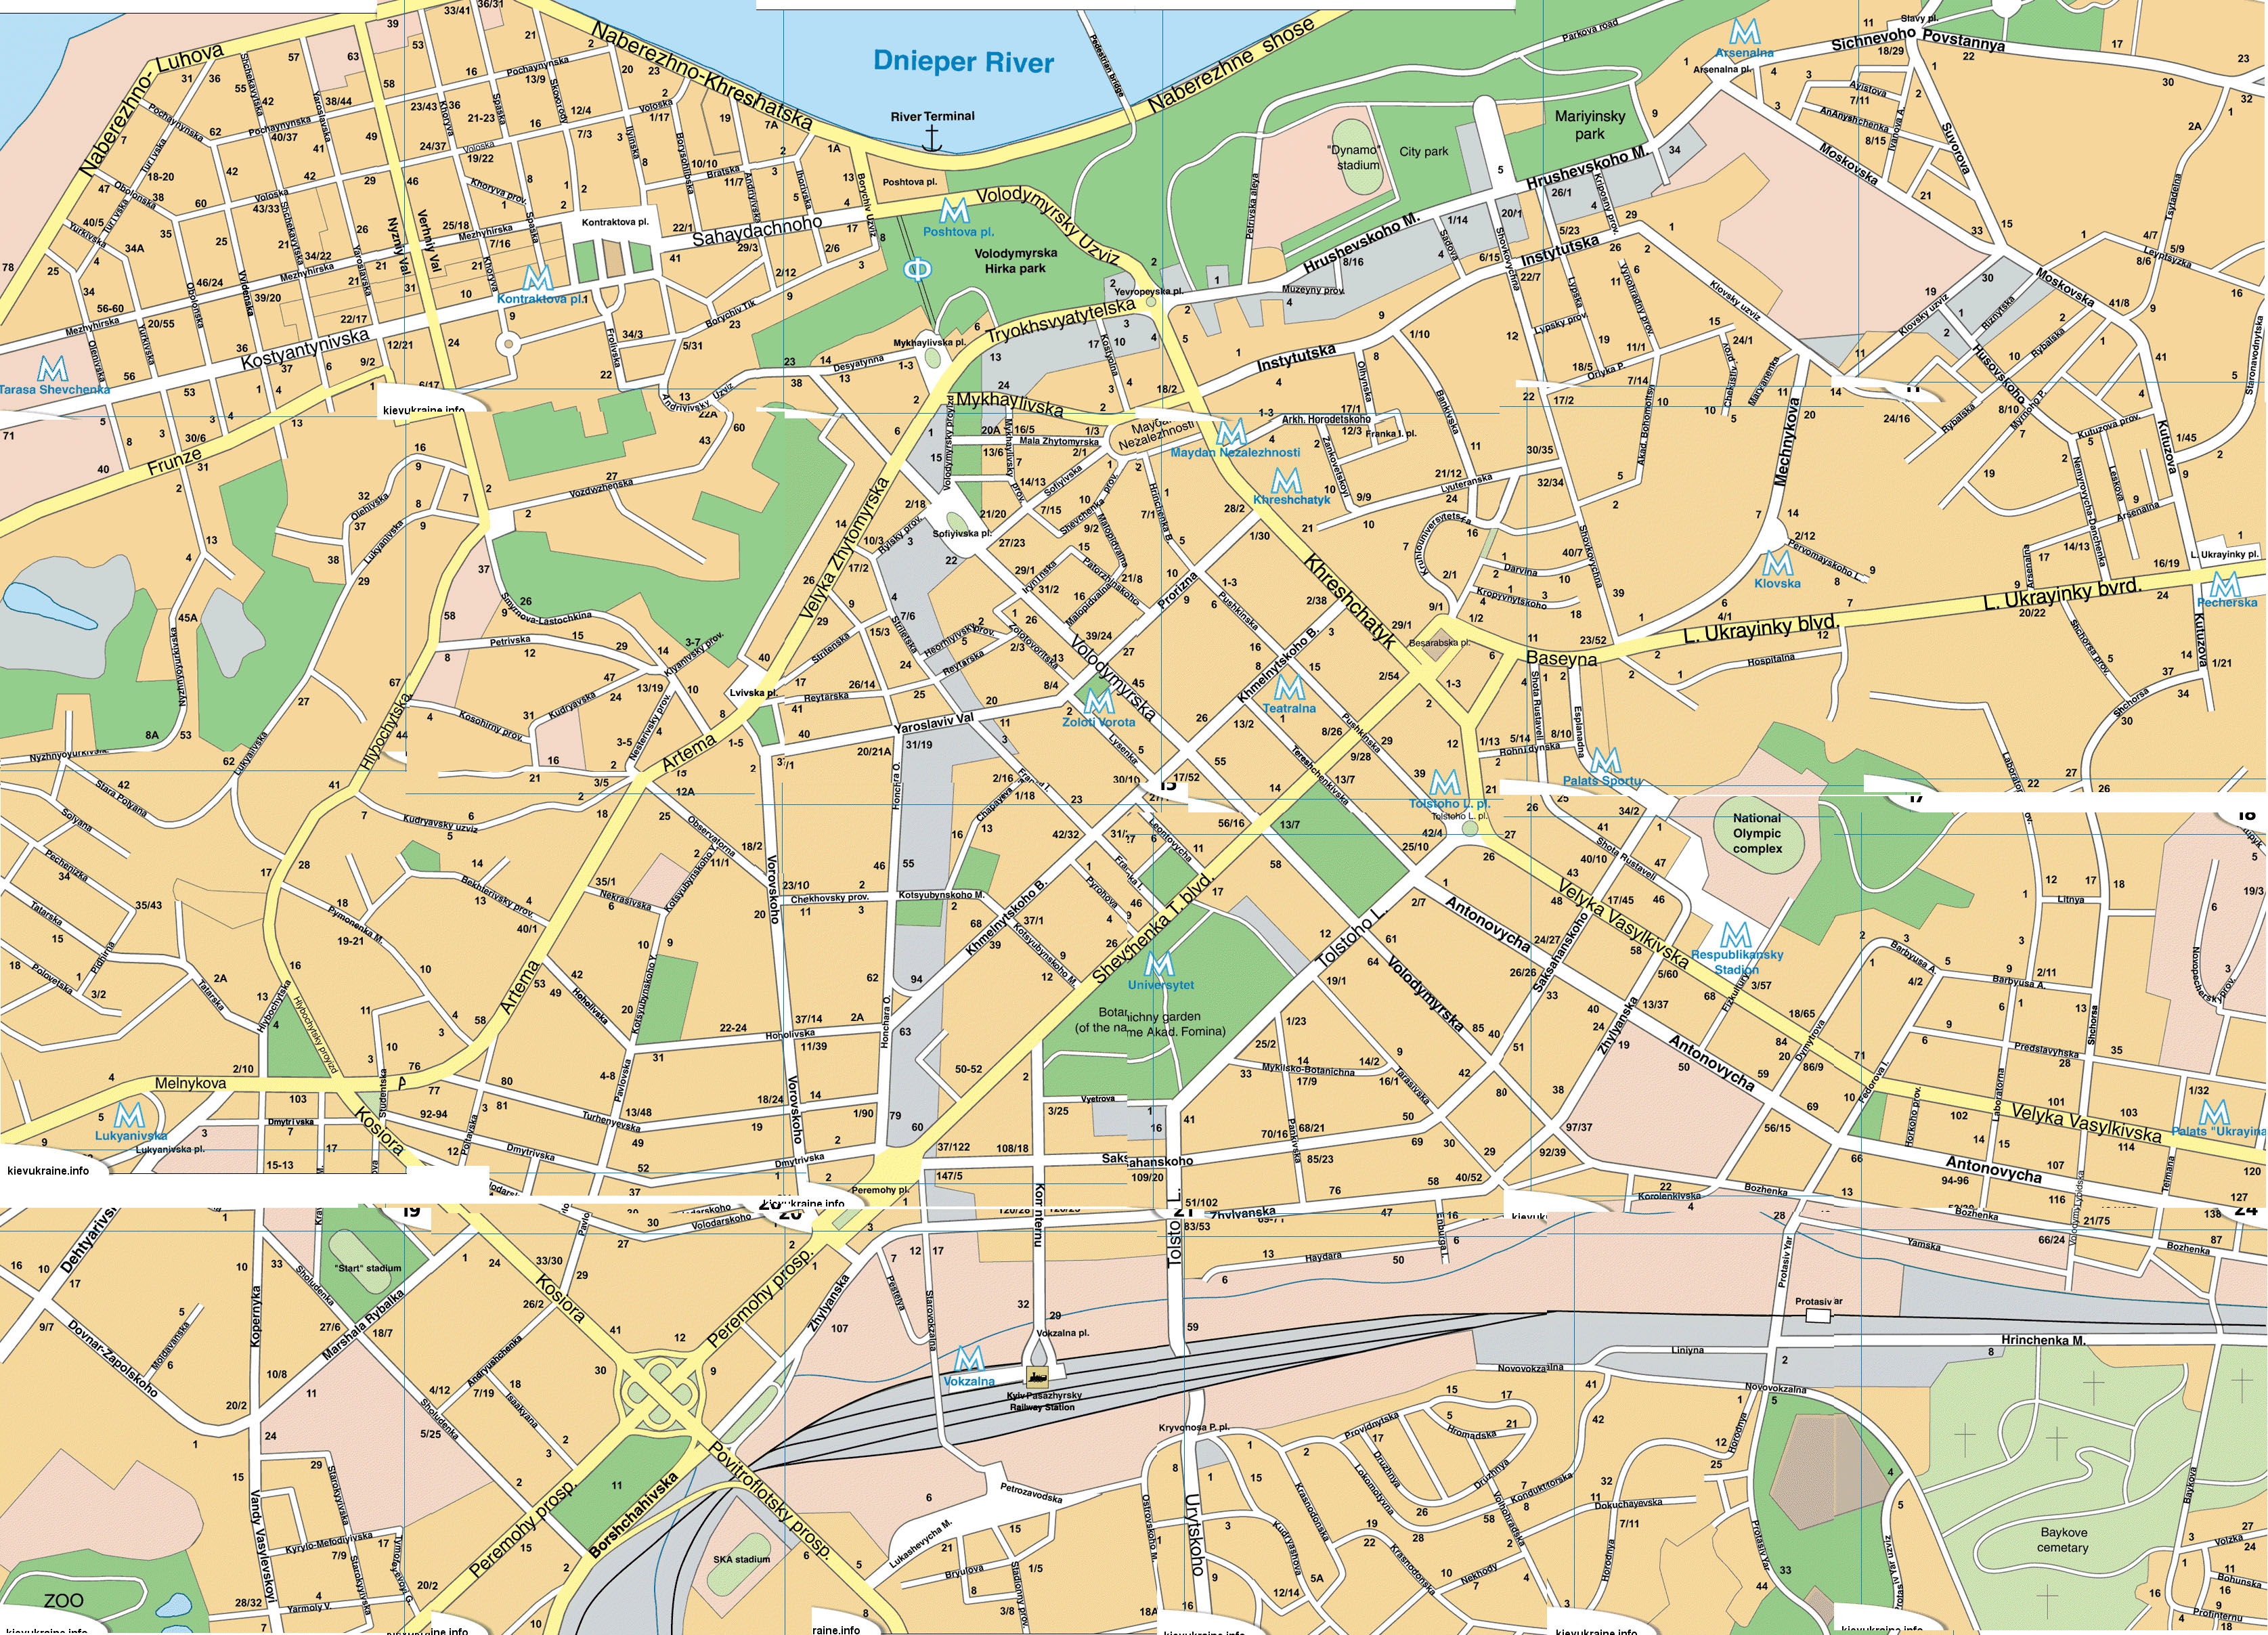 Hotels, Historical Attractions on a Kiev map - Check this out